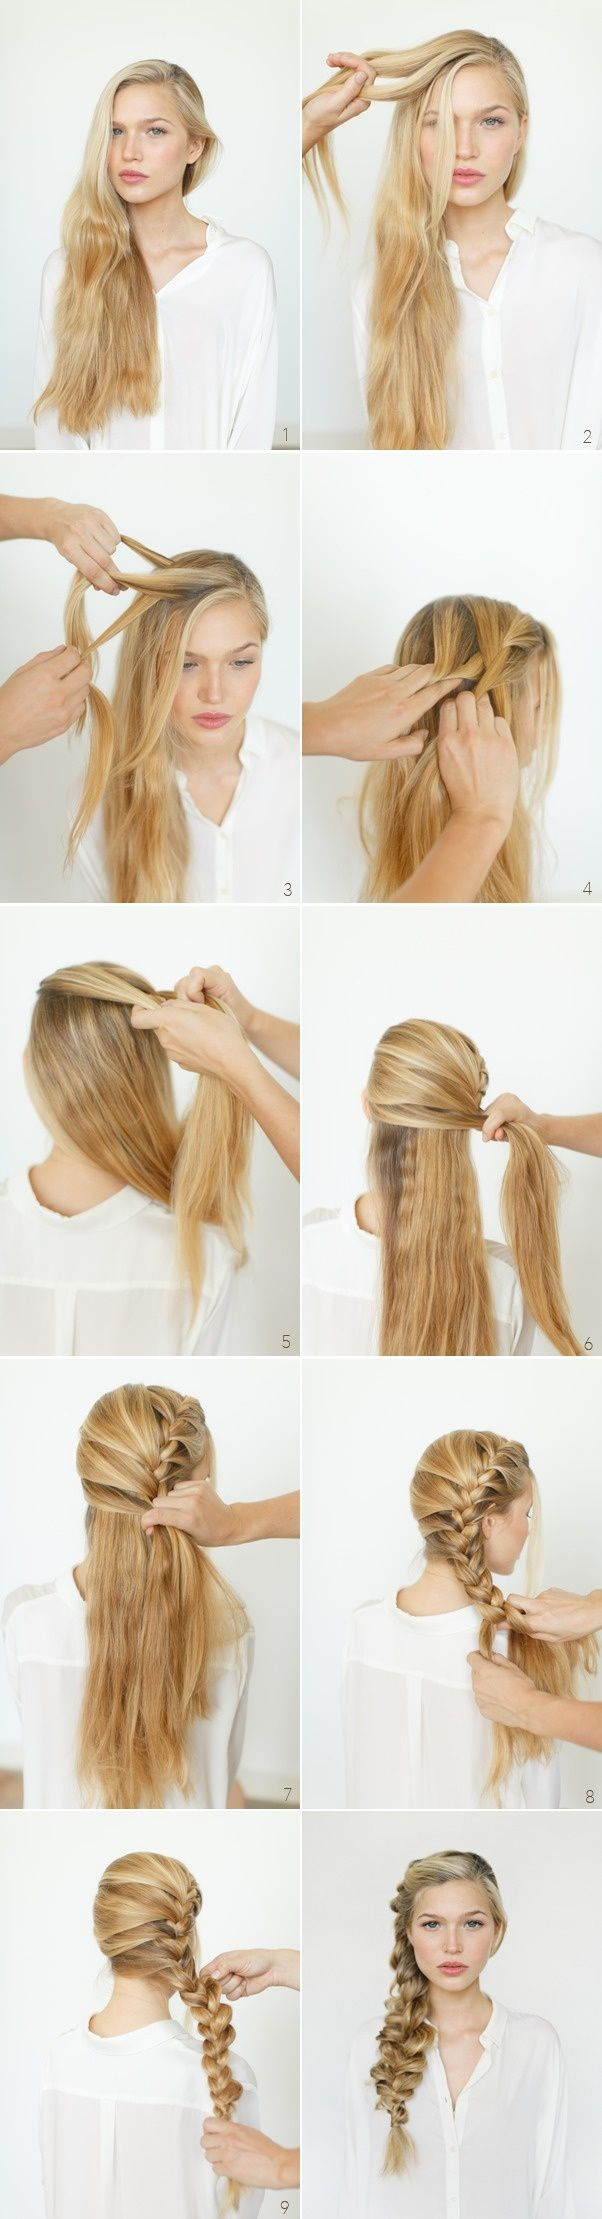 Hairstyle Changer hairstyle changer photo editor poster hairstyle changer photo editor apk screenshot 20 Easy Hairstyles For Women Whove Got No Time 7 Is A Game Changer